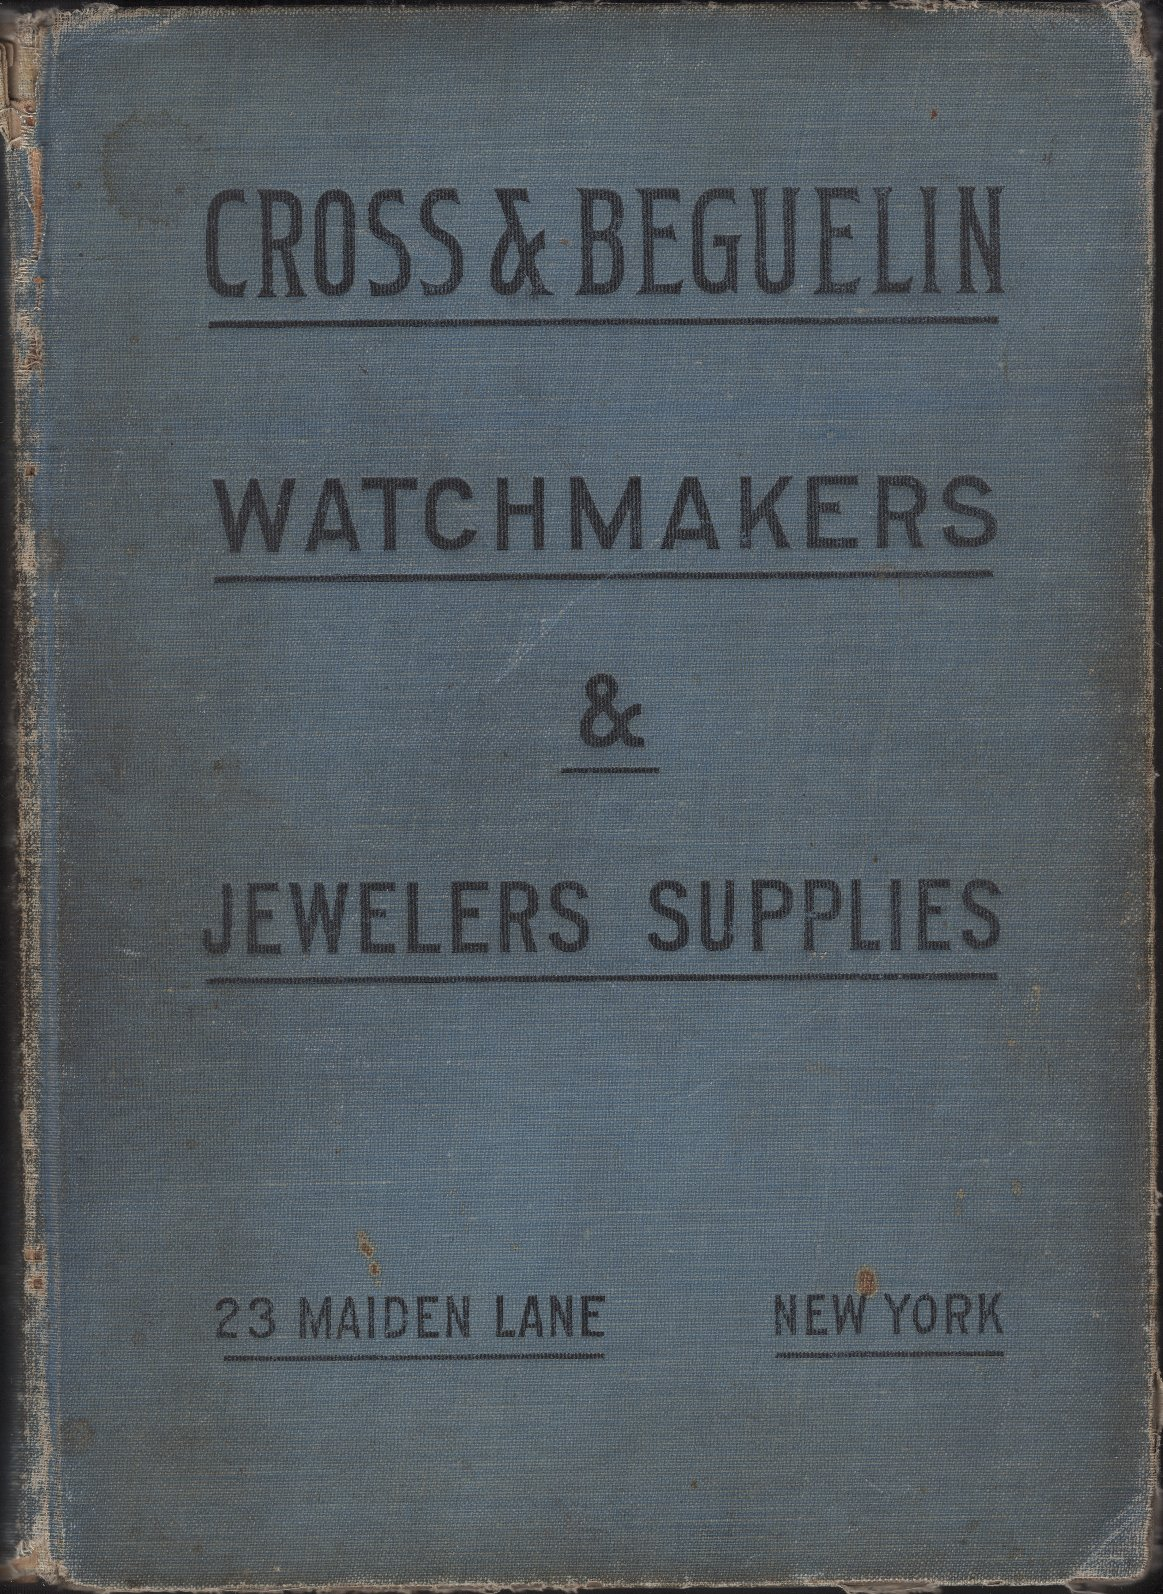 1910 Cross & Beguelin: New Columbus Parts Material Catalog Cover Image